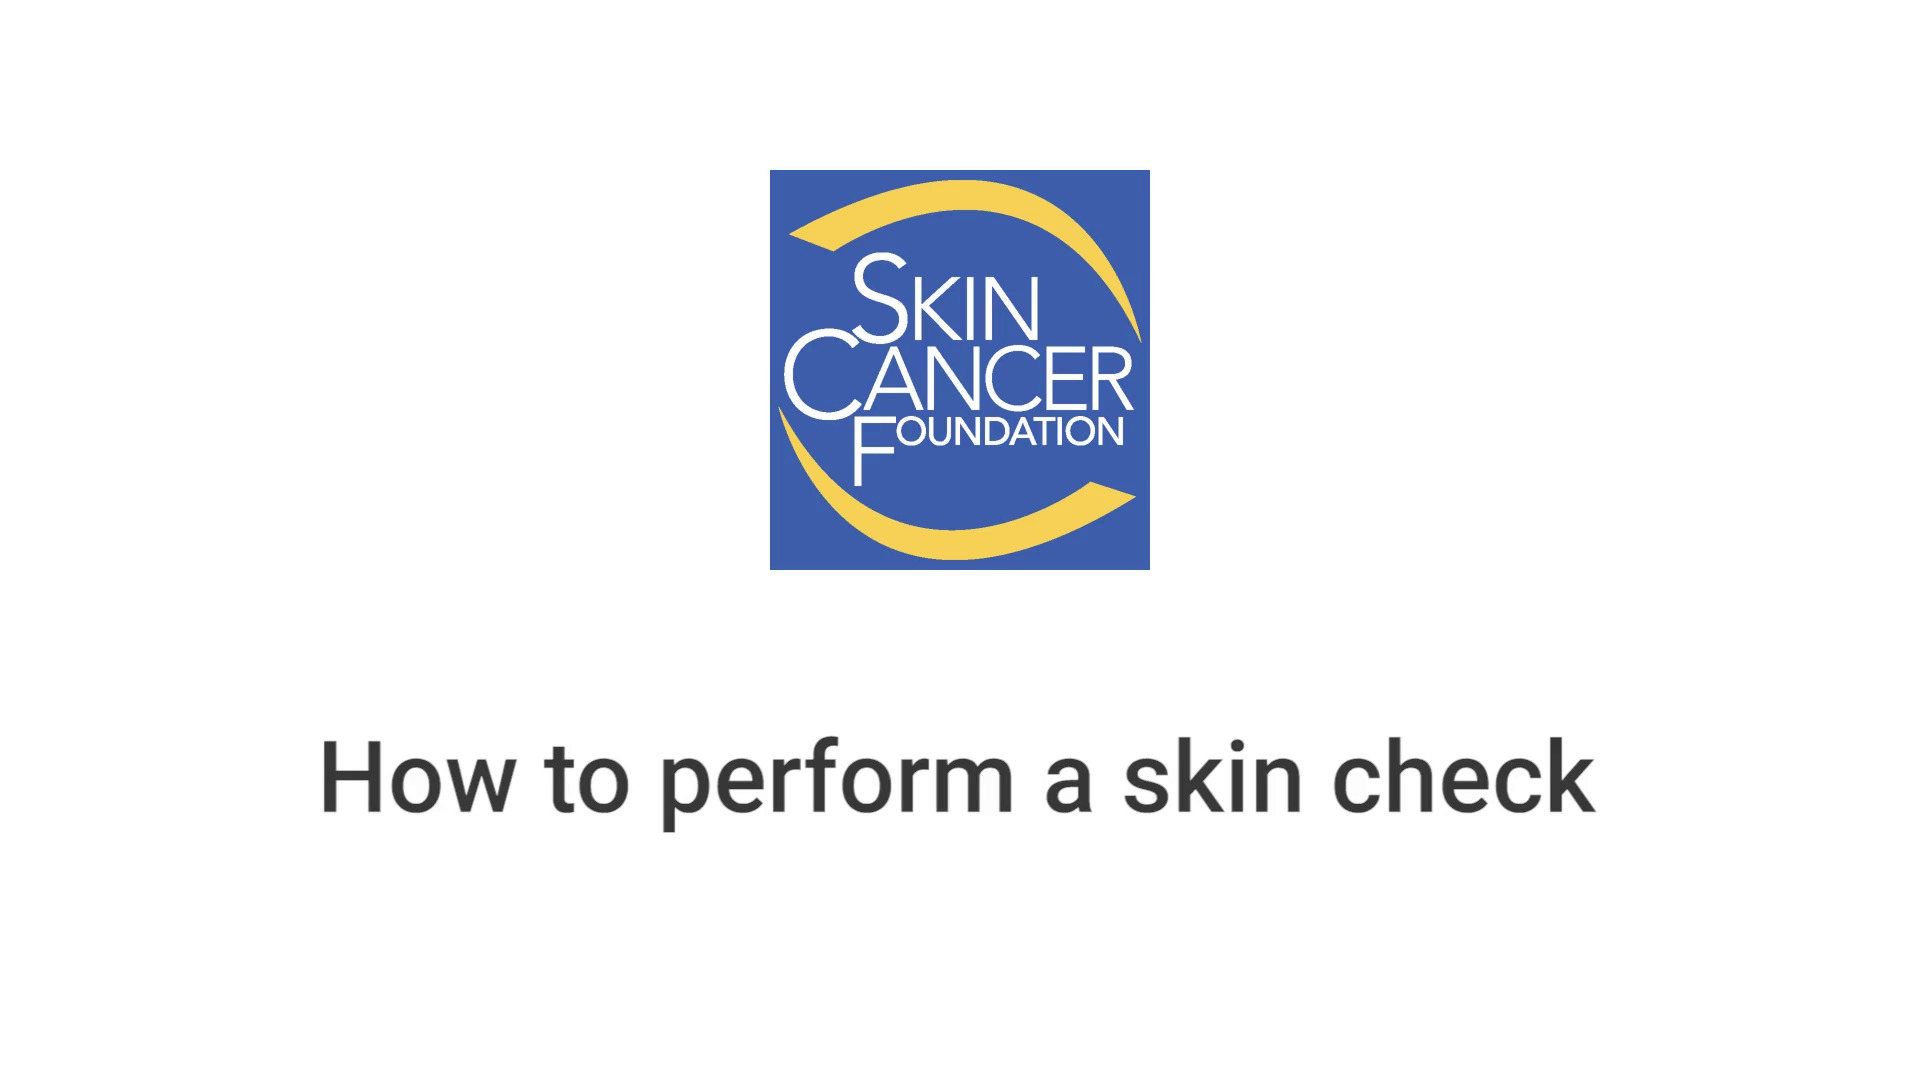 hight resolution of skin cancer foundation